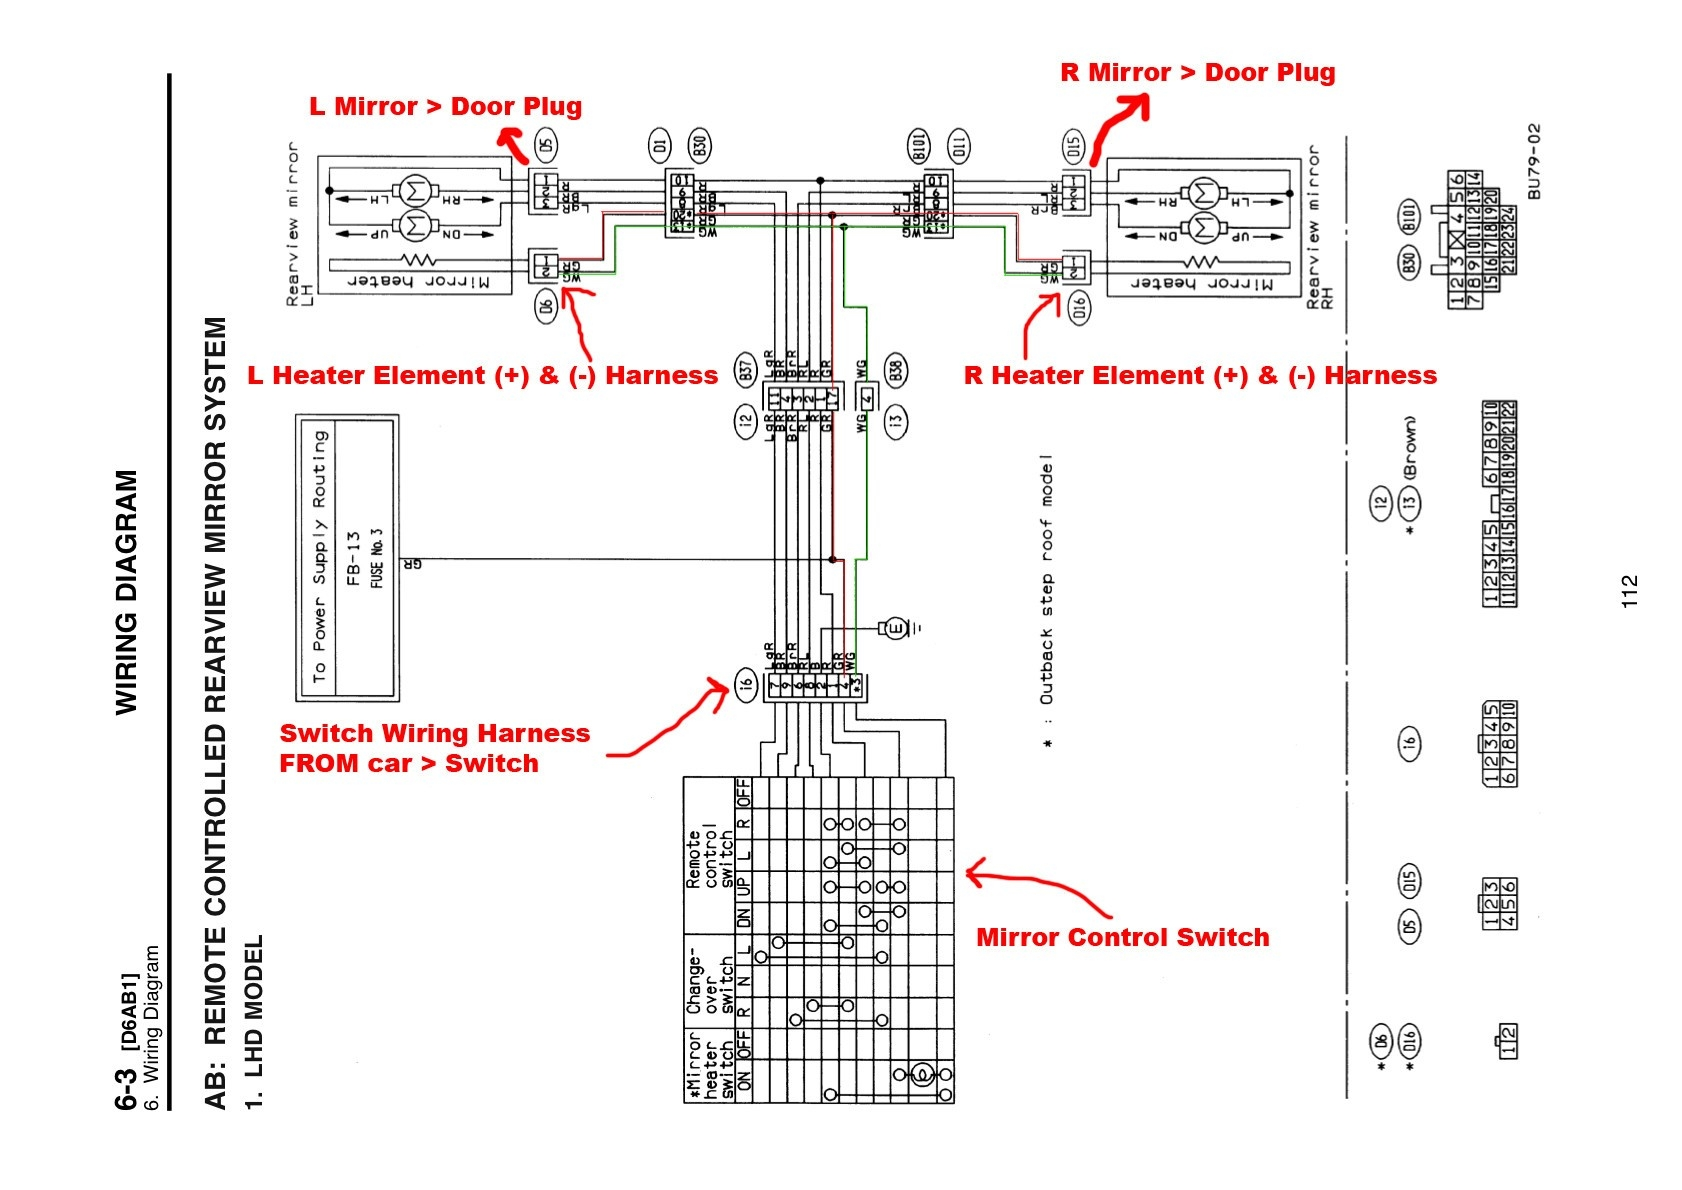 Radio Wiring Diagram For Subaru Outback on